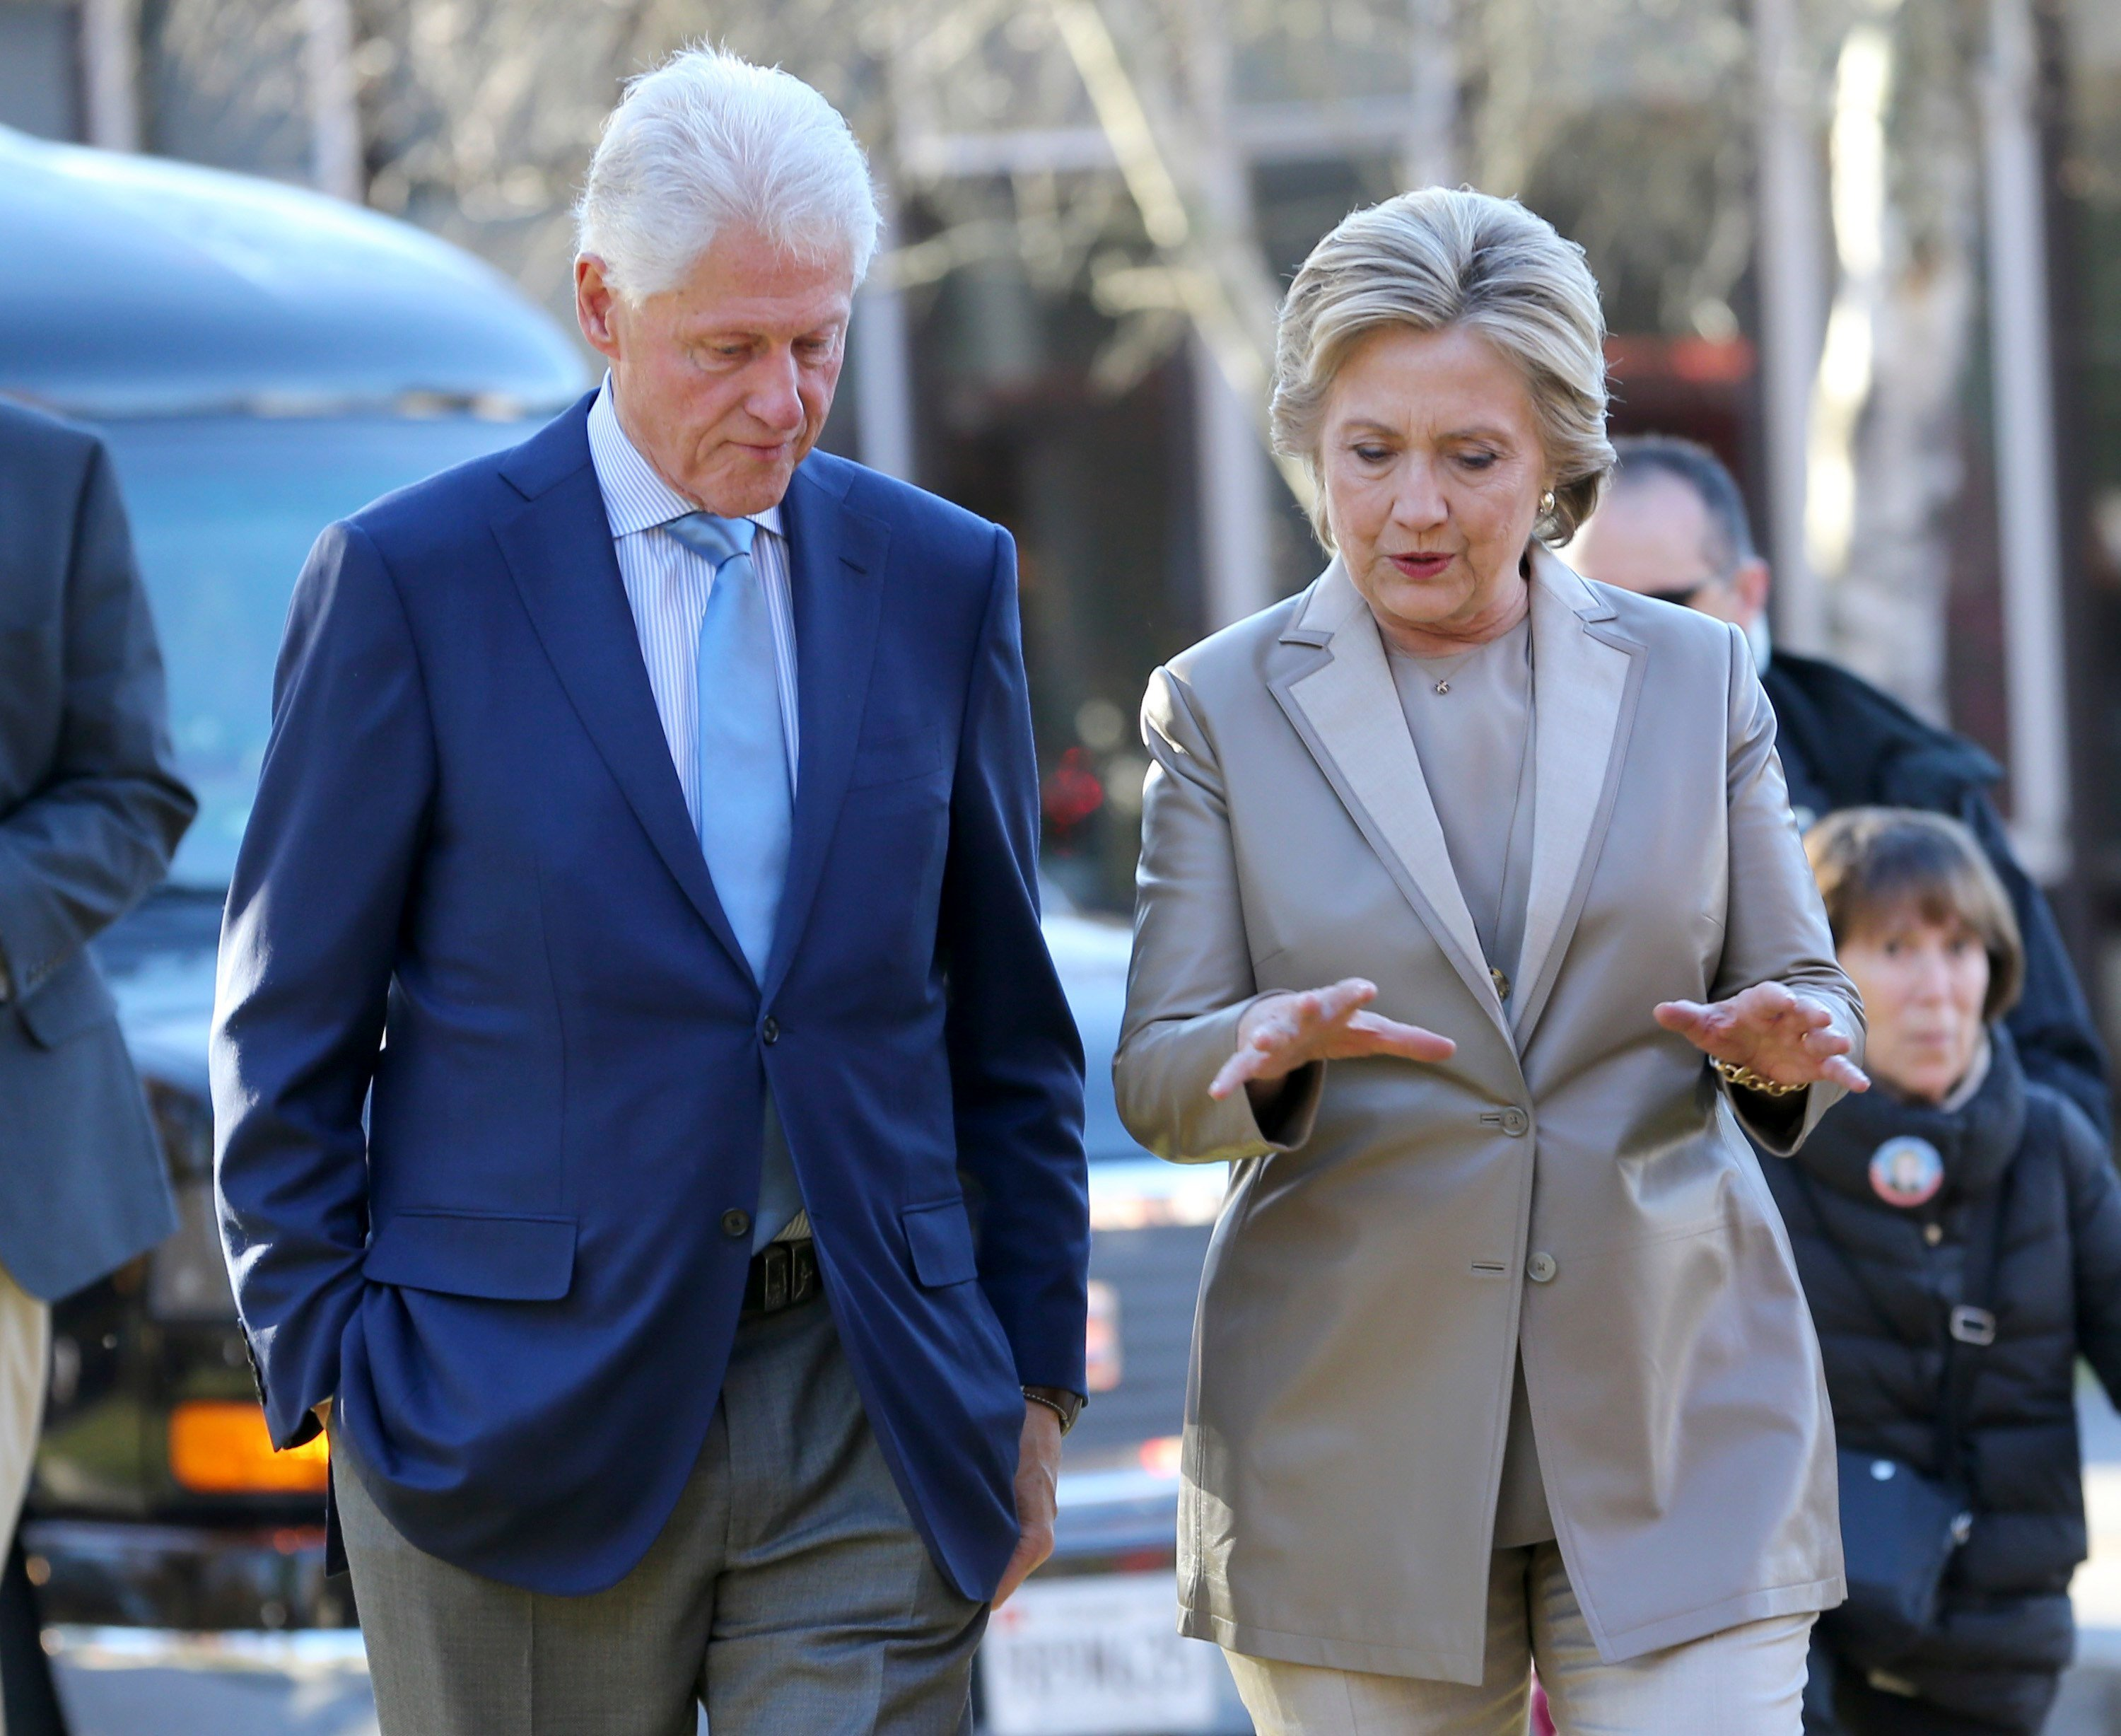 Bill And Hillary Clinton To Attend Trump Inauguration